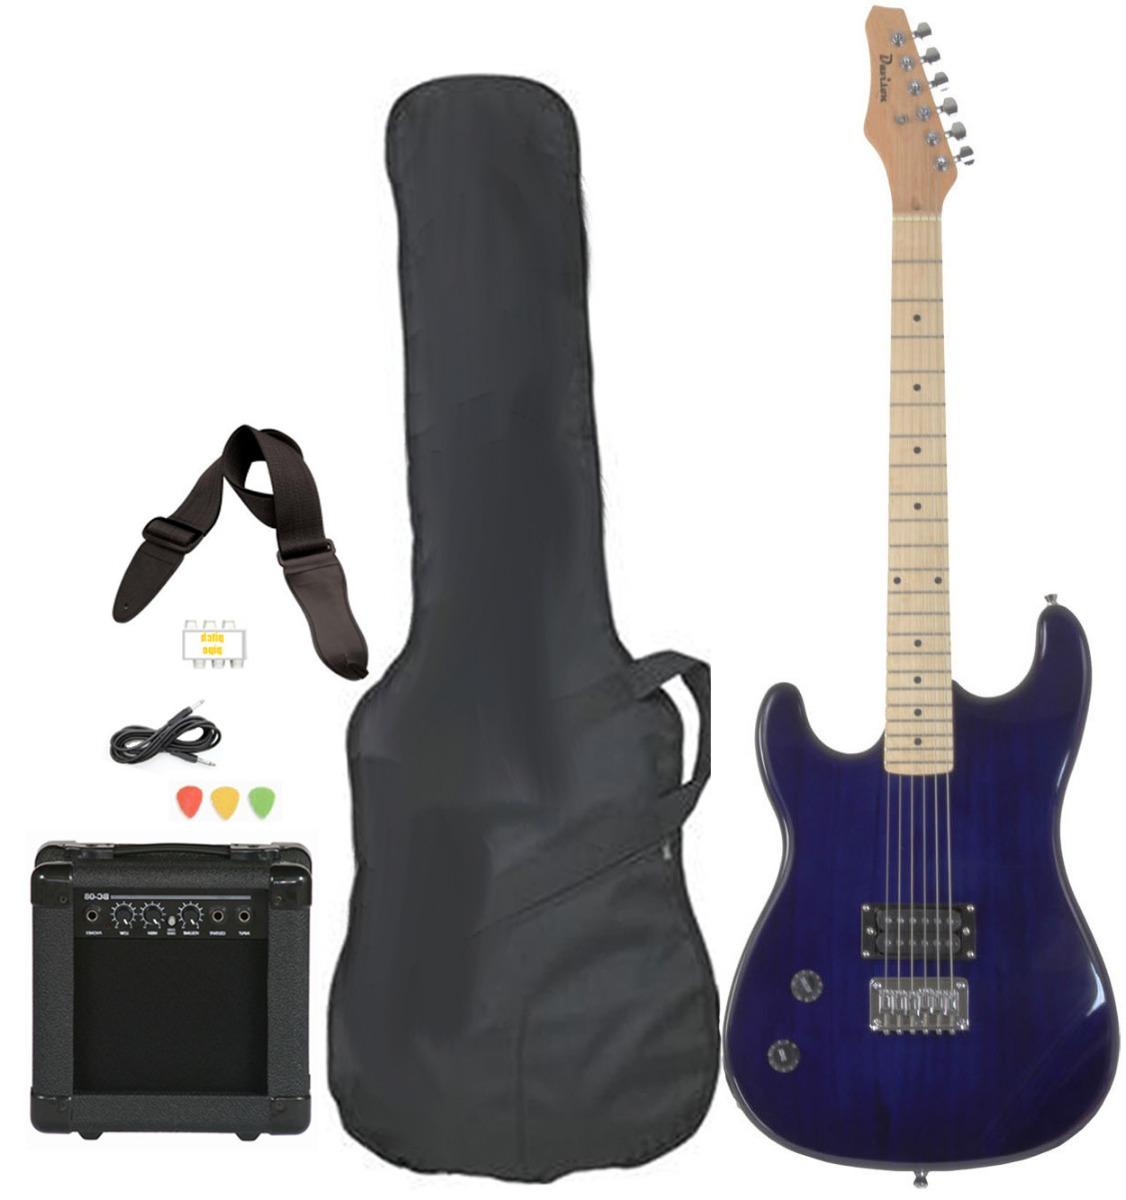 Davison Guitars Electric Guitar Blue Left Handed Full Size With Amp Case Cord Strap And... by